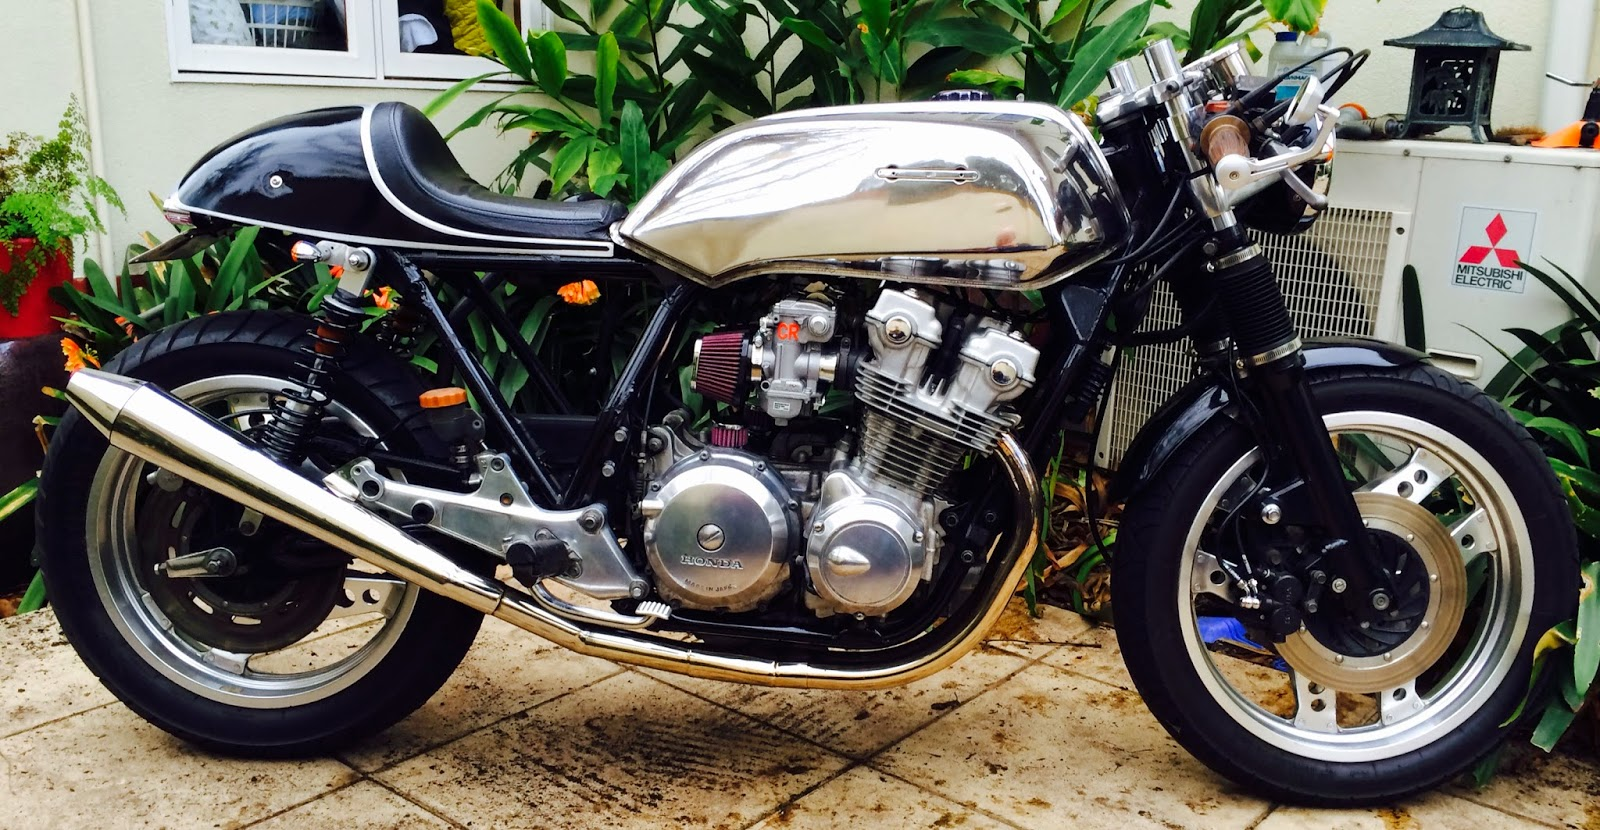 1981 Cb750f Metamorphosis Cafe Racer The Above Picture Shows Honda Cb100 Pictorial Diagram It Cheers